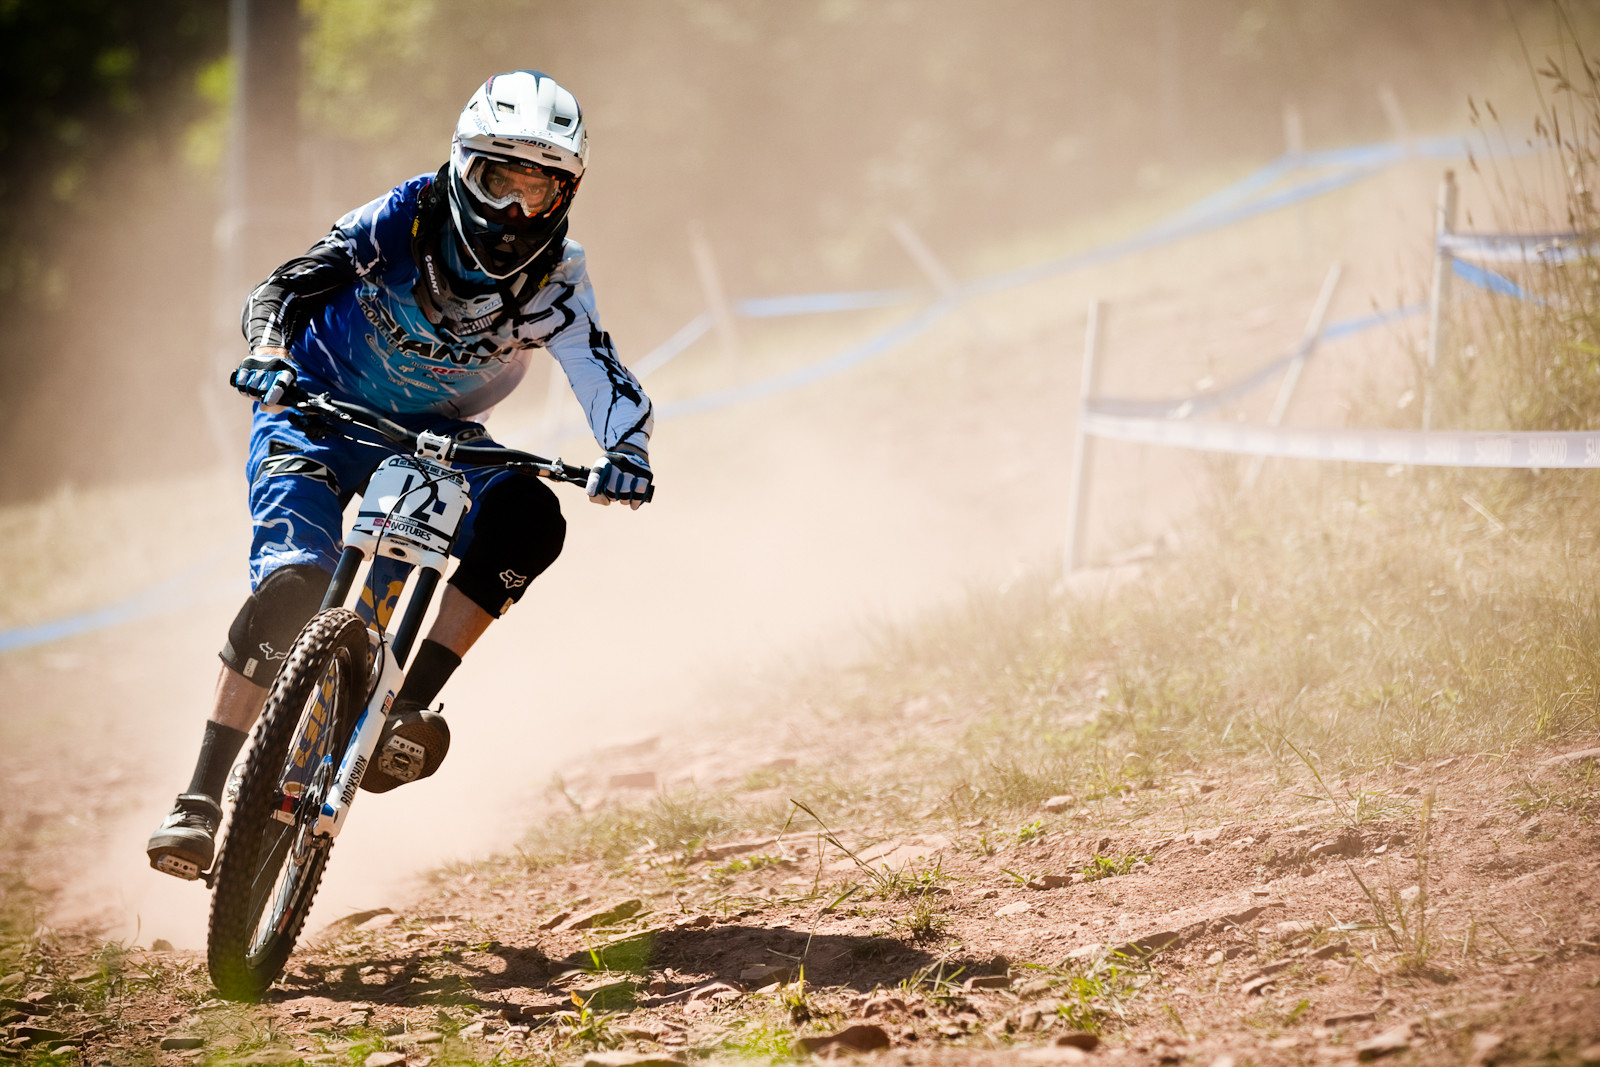 Andrew Neethling at Windham World Cup - 2012 UCI World Cup, Windham, New York Day 2 - Mountain Biking Pictures - Vital MTB